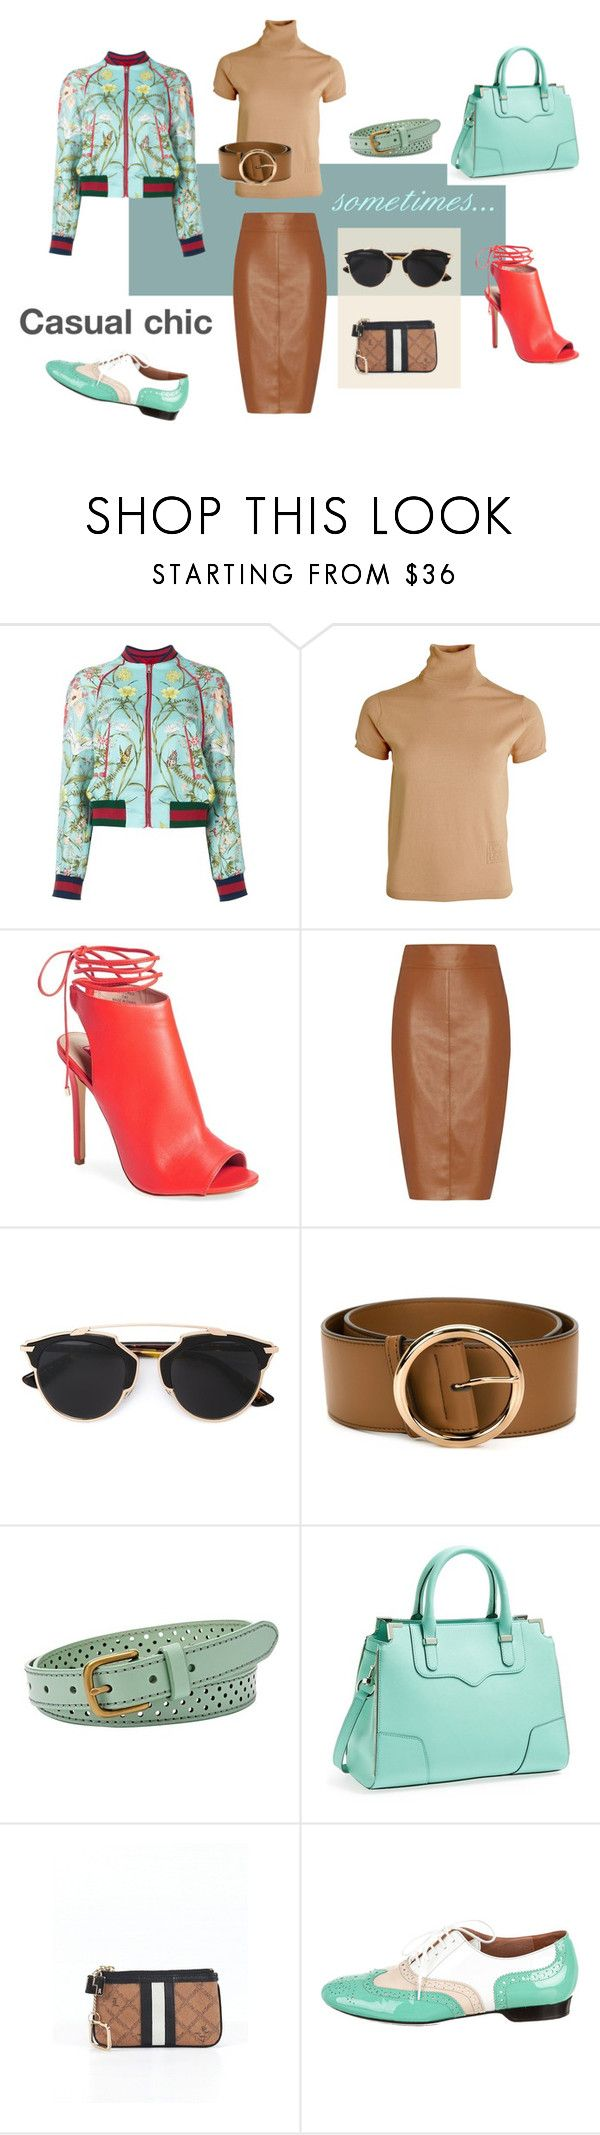 """Casual chic"" by pinfi on Polyvore featuring Gucci, Totême, Topshop, Bailey 44, Christian Dior, STELLA McCARTNEY, FOSSIL, Rebecca Minkoff, L.A.M.B. and Robert Clergerie #fashion #trends"